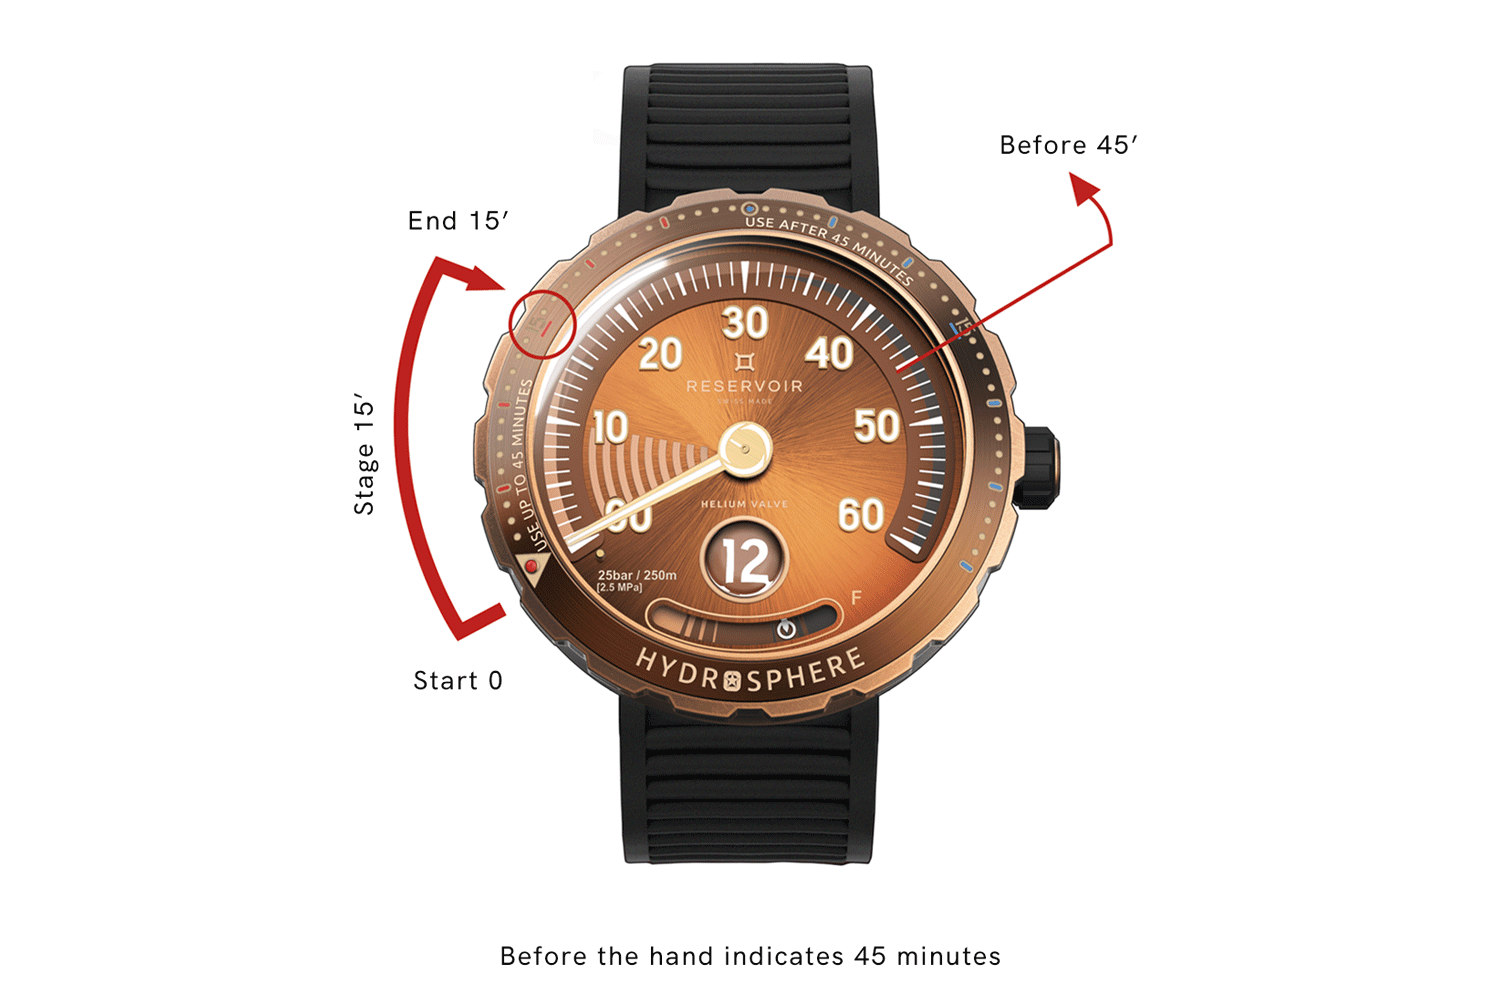 How to measure the decompression level of 15 minutes, before the minute hand indicates 45 minutes